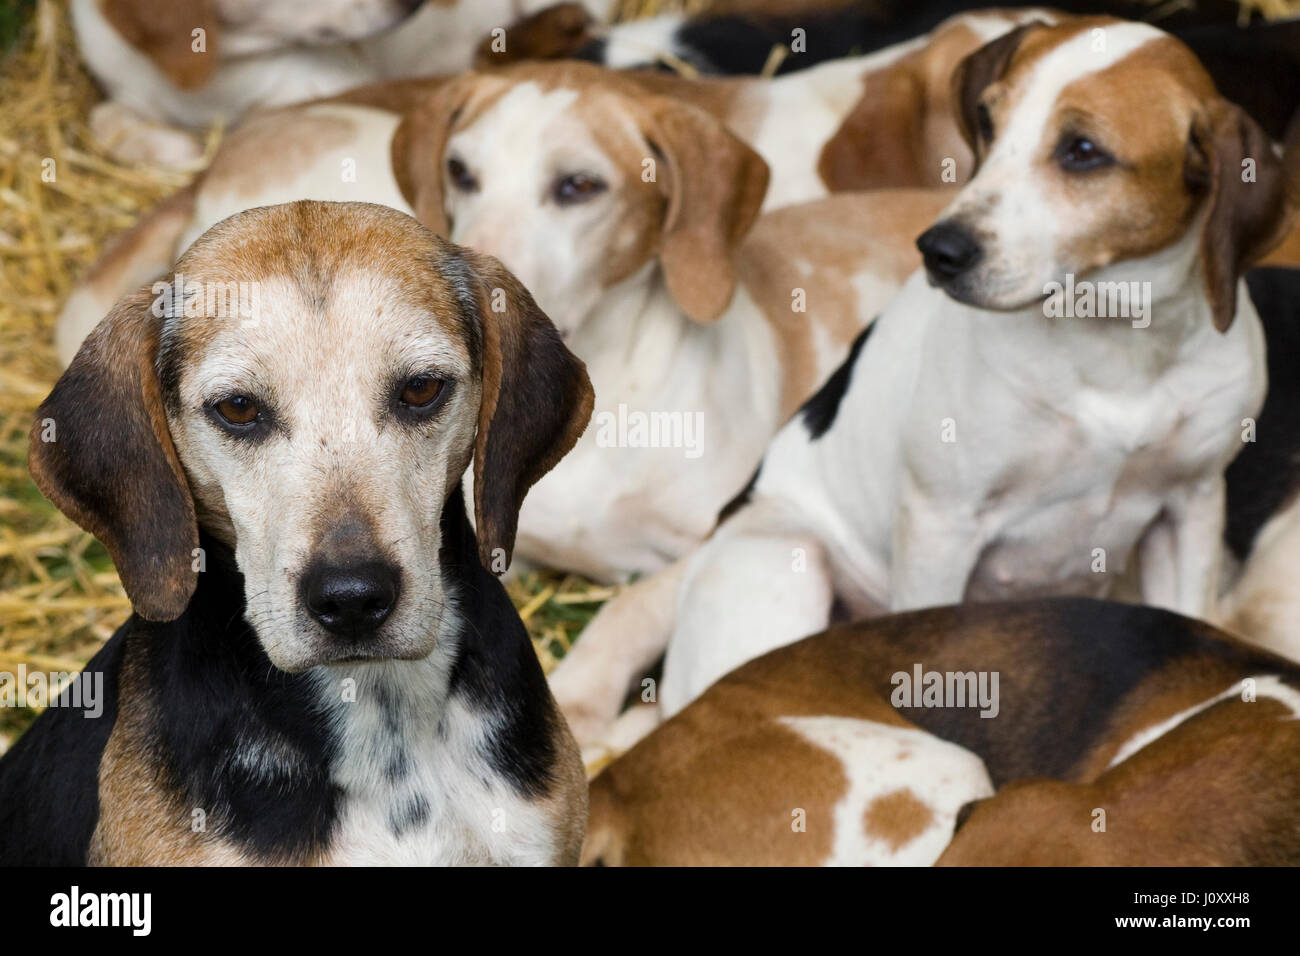 Beagles in kennels - Stock Image